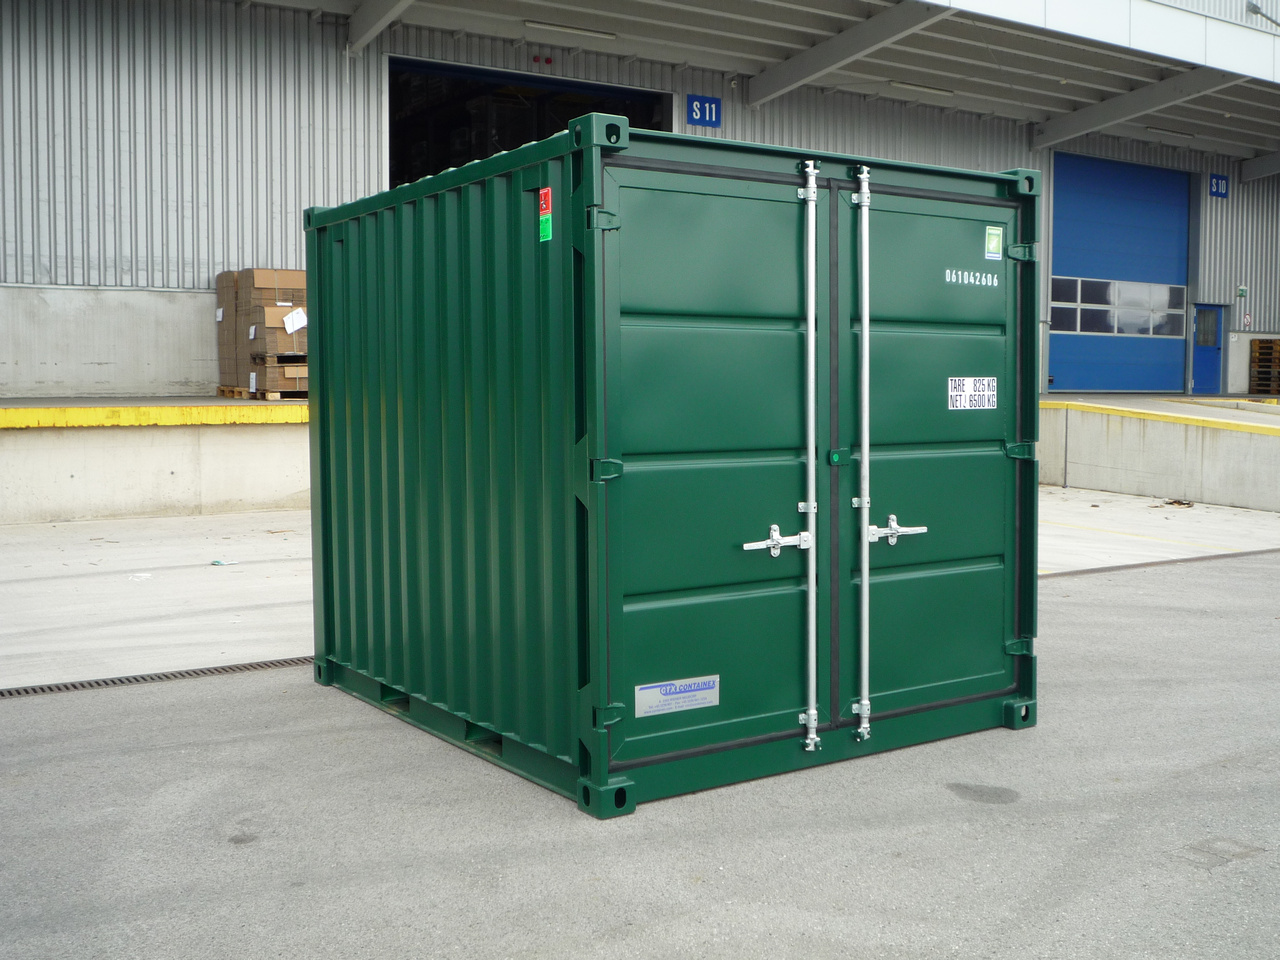 Cheap Storage Adelaide New 10ft Storage Container For Sale Only 1870 Delivered